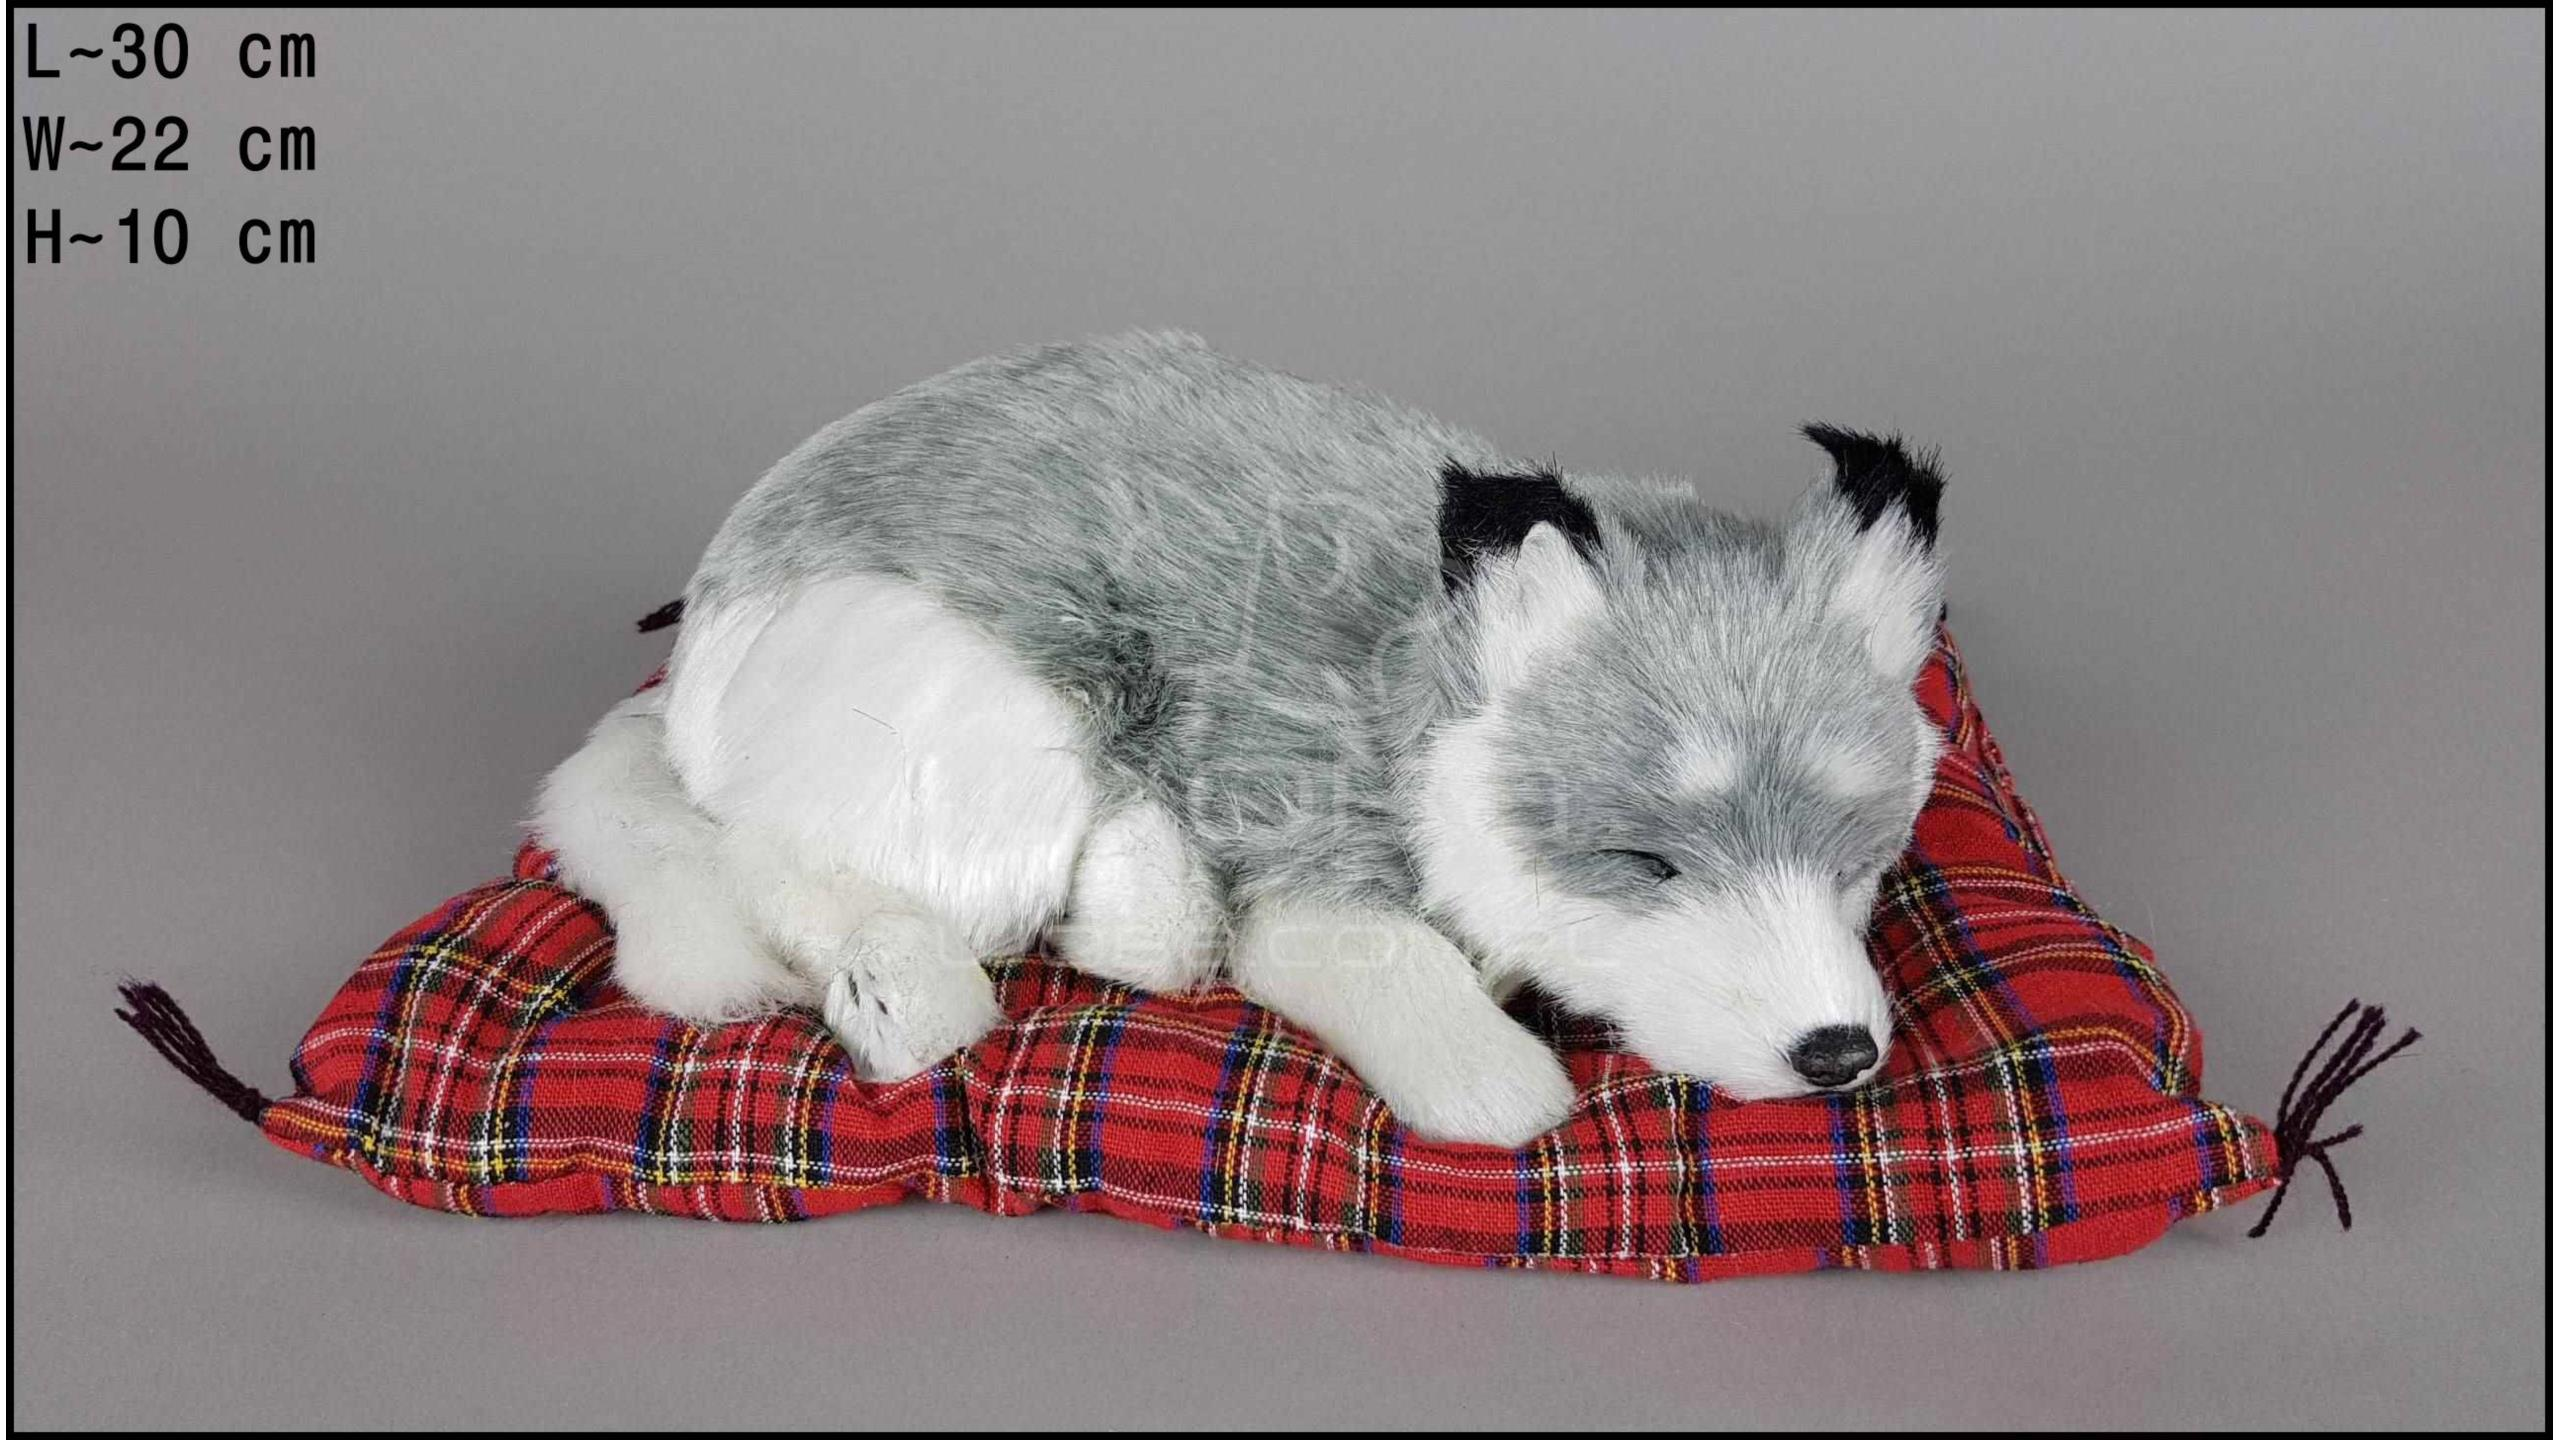 Dog Husky on a pillow - Size L